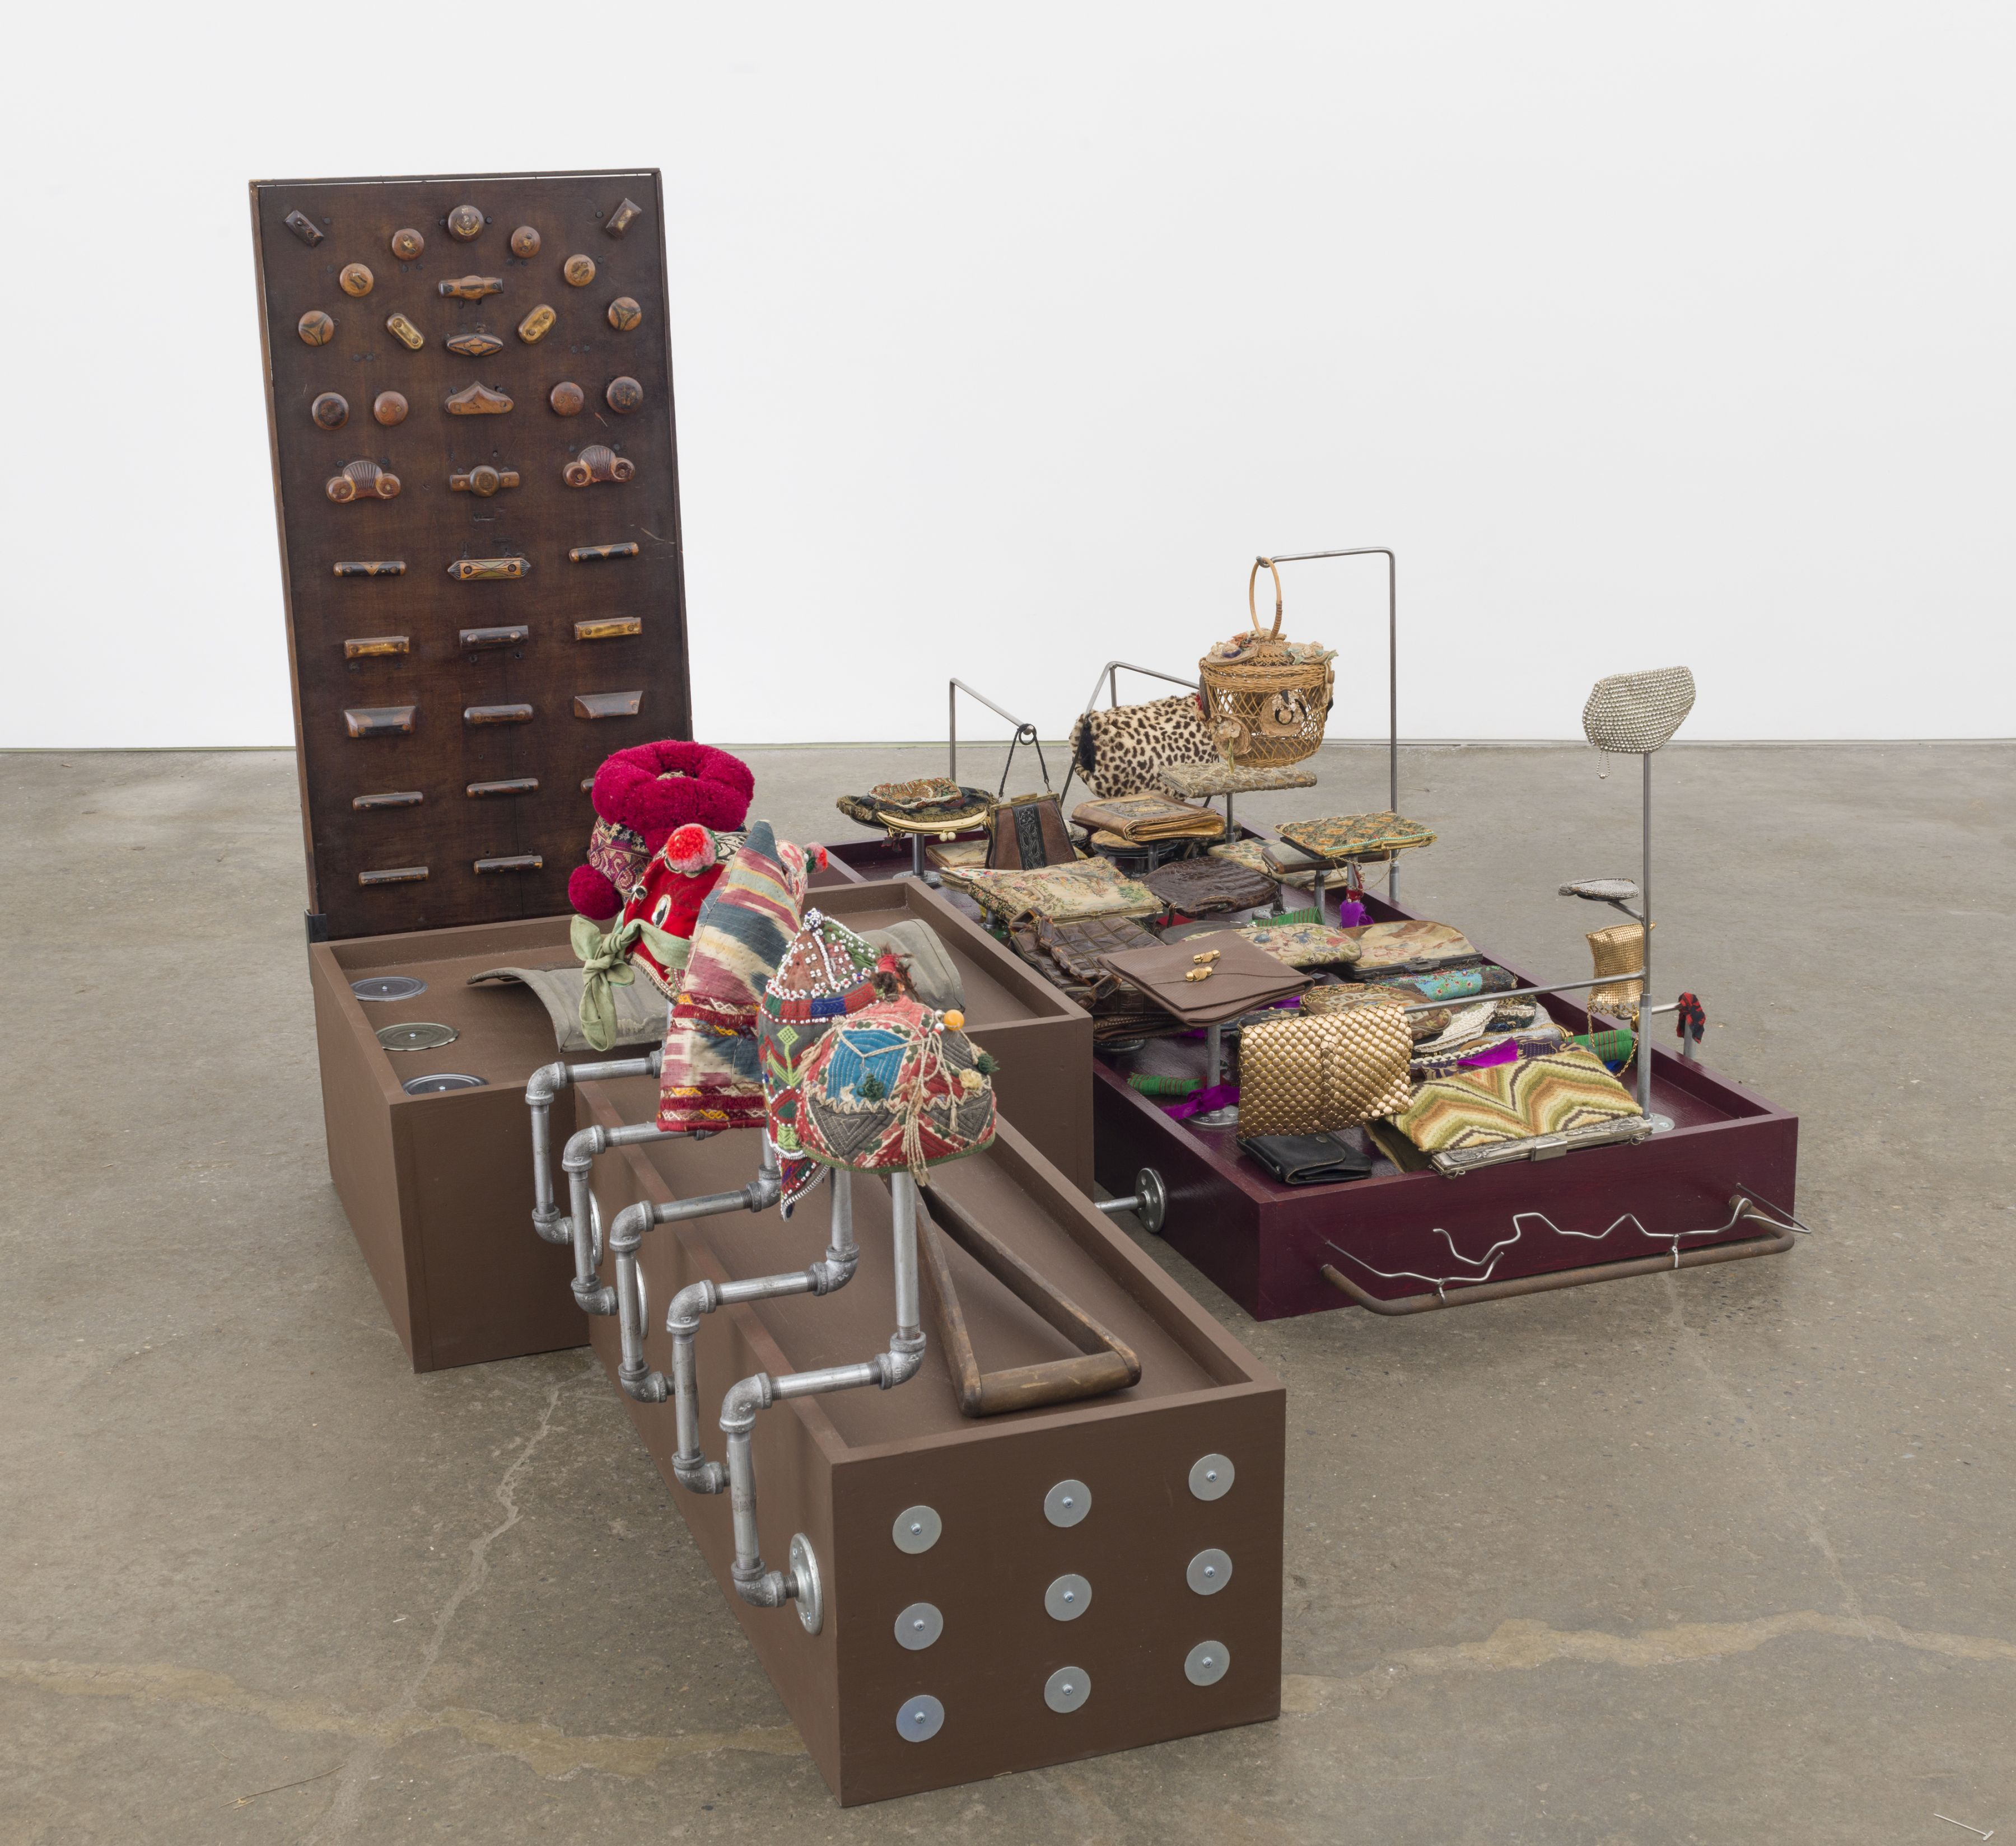 Collections - Love and work, 2017-18, collection of evening bags, handmade snow shovel, baby hats (China, Afghanistan, Uzbekistan), panel of drawer knobs, tin can covers, metal rods, plumbing parts, wooden platforms